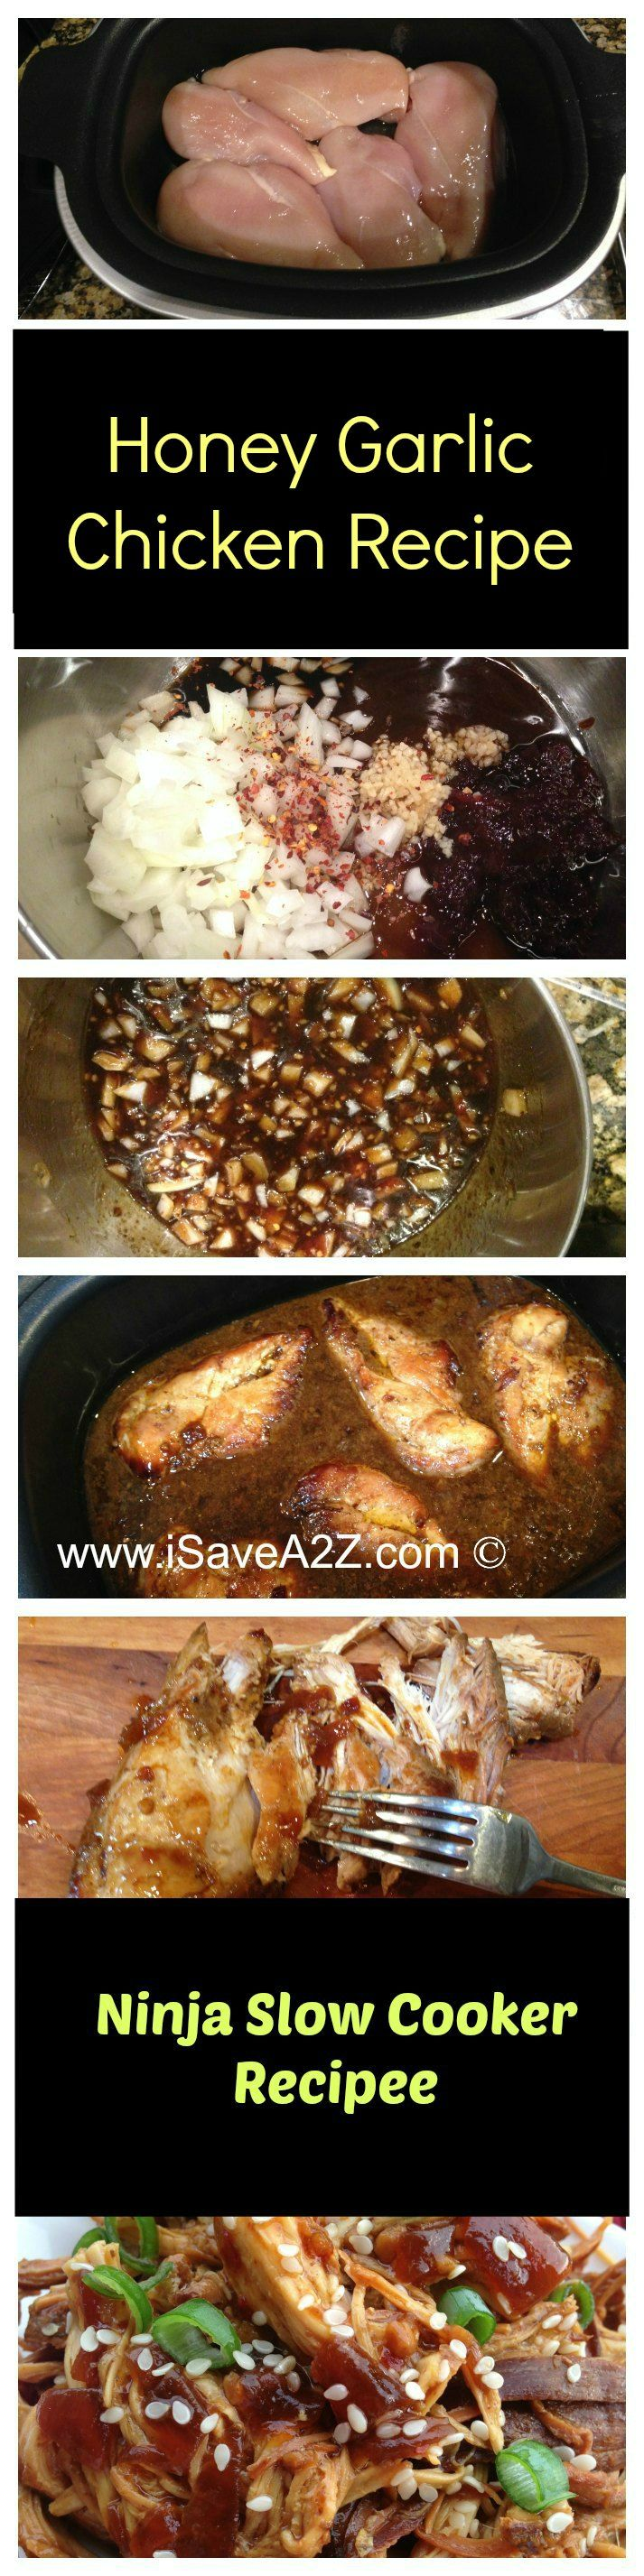 Honey Garlic Chicken Recipe made in my Ninja Slow Cooker!  This recipe is CRAZY GOOD!!! iSaveA2Z.com